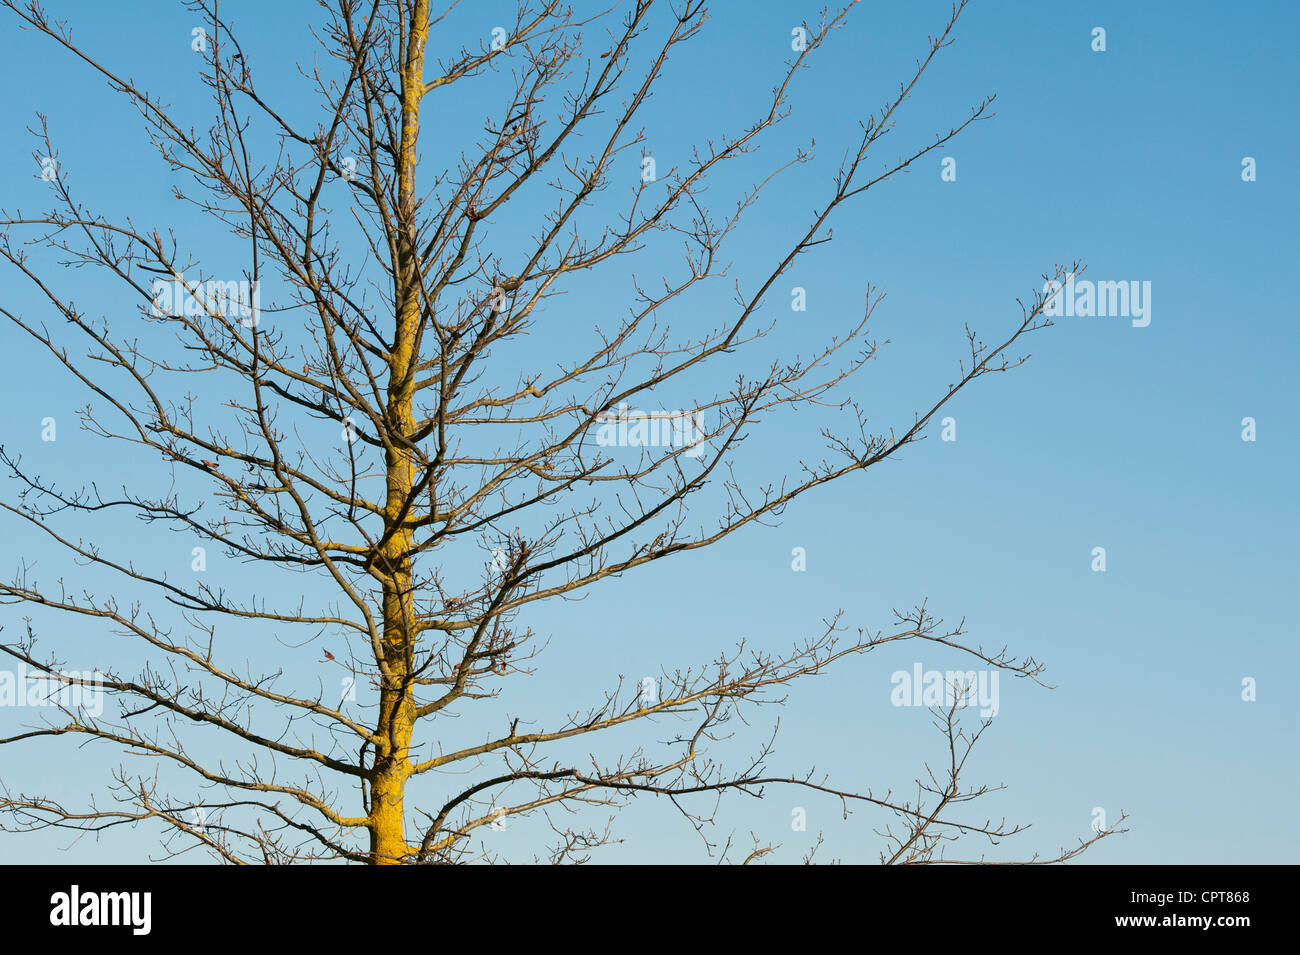 Quercus cerris. Bare turkey oak tree in early spring. UK - Stock Image